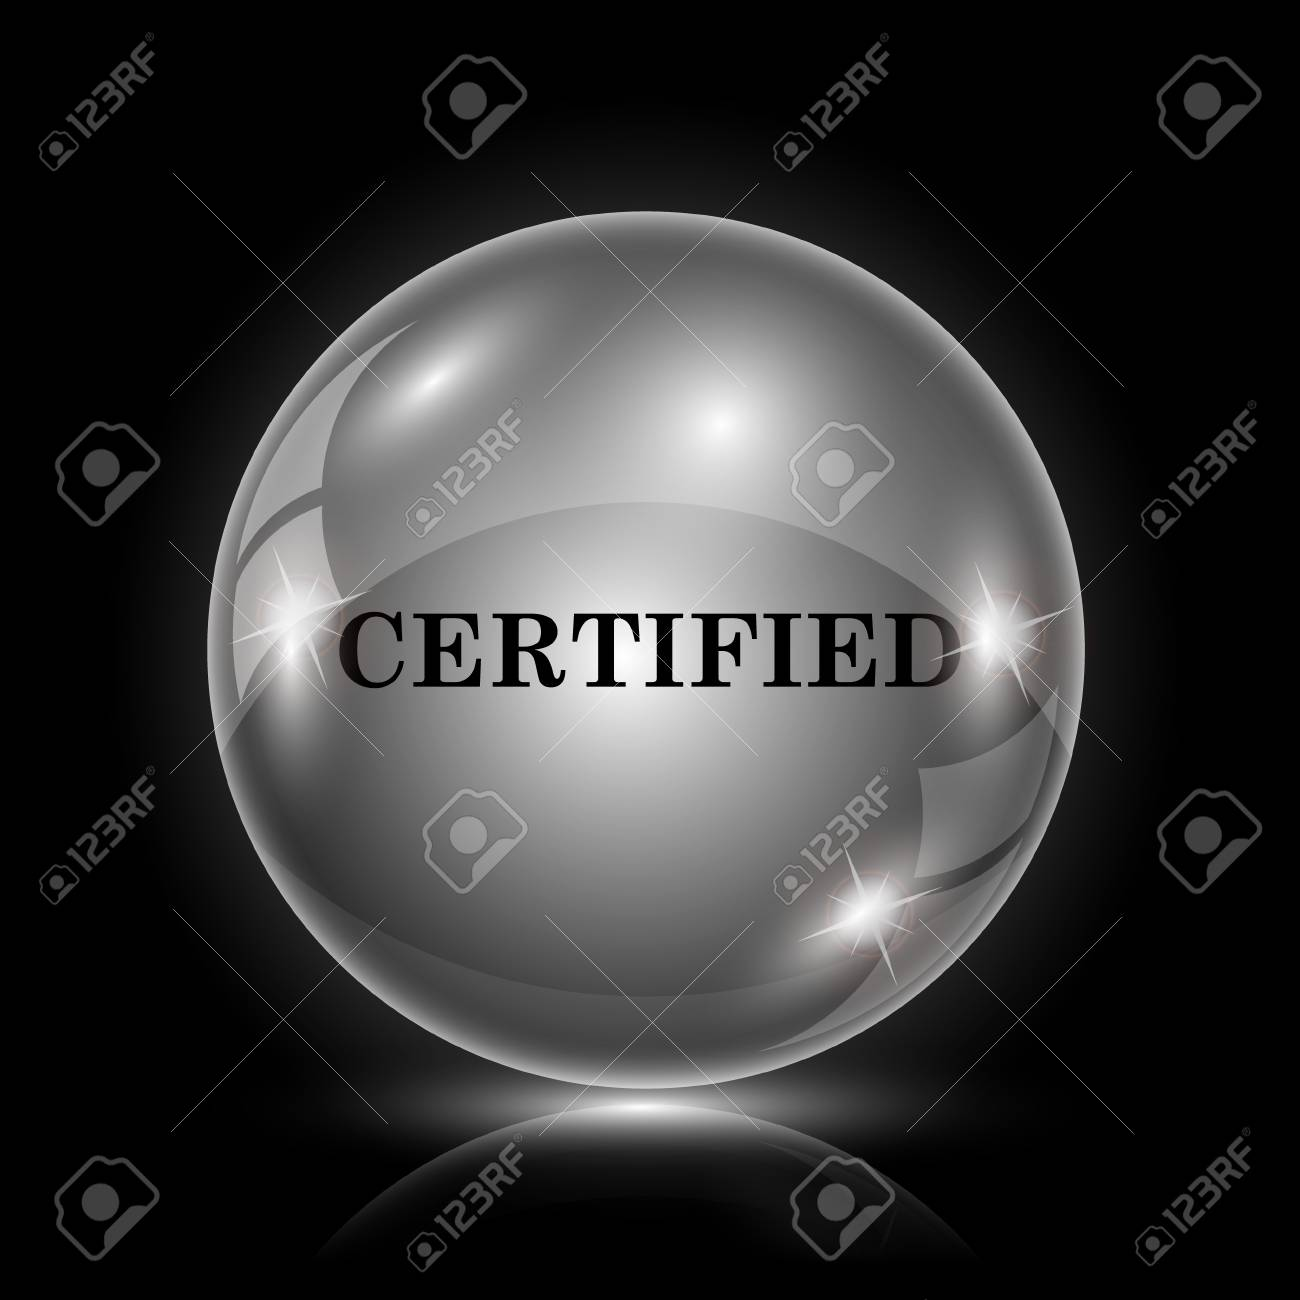 Shiny glossy icon - glass ball on black background Stock Vector - 26378141